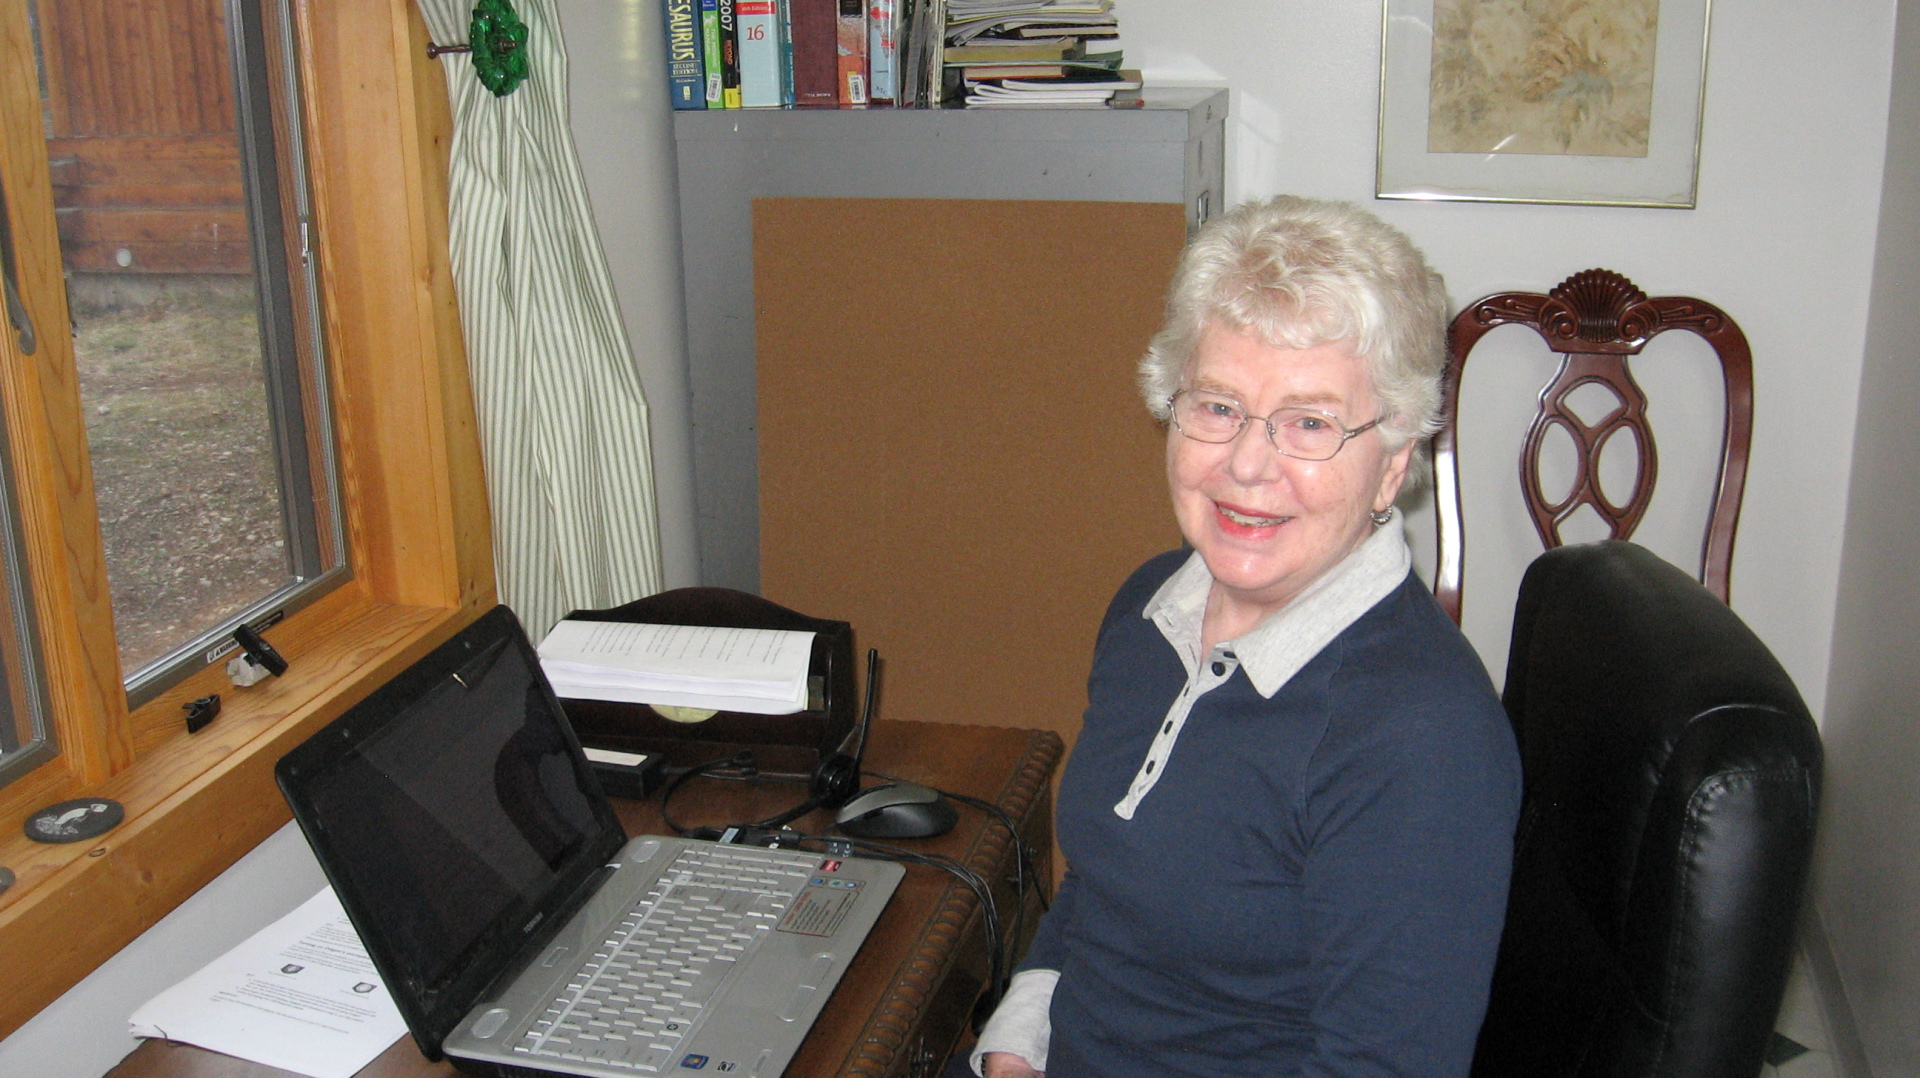 Karen Wills Cunningham, attorney turned published author